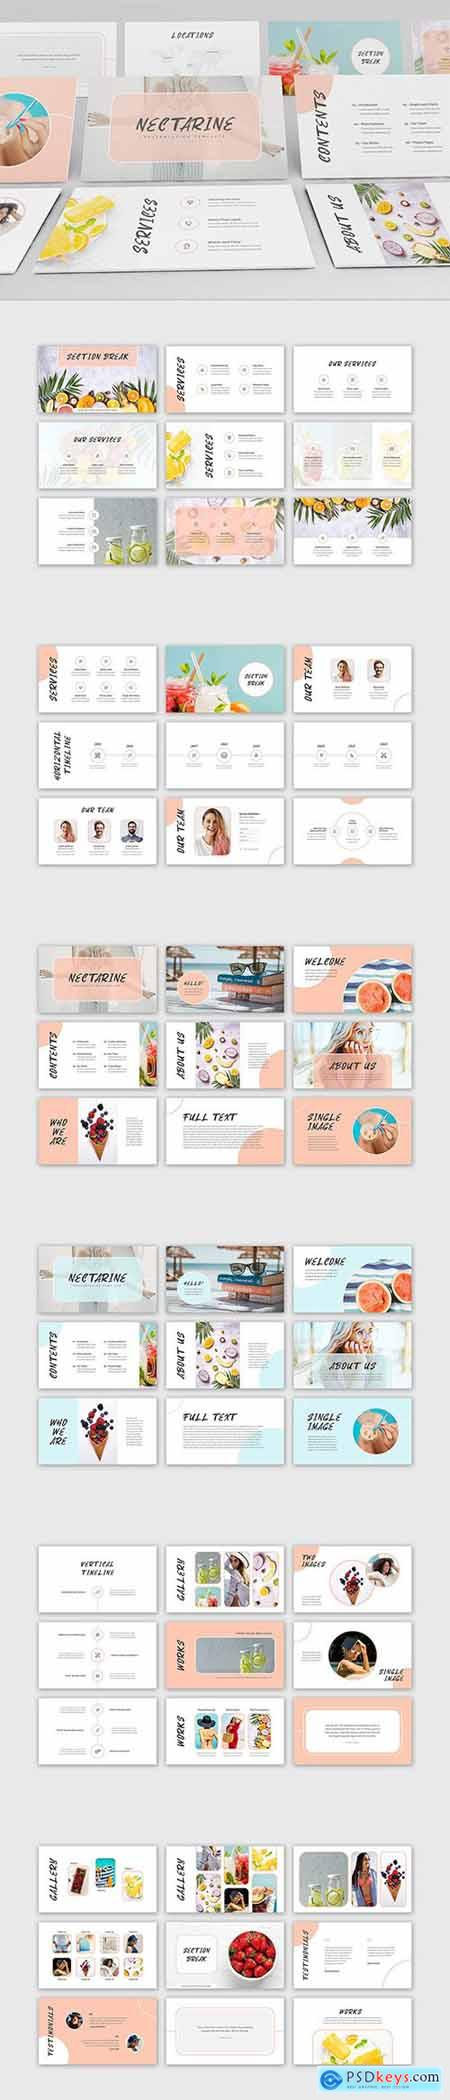 Nectarine PowerPoint Presentation Template